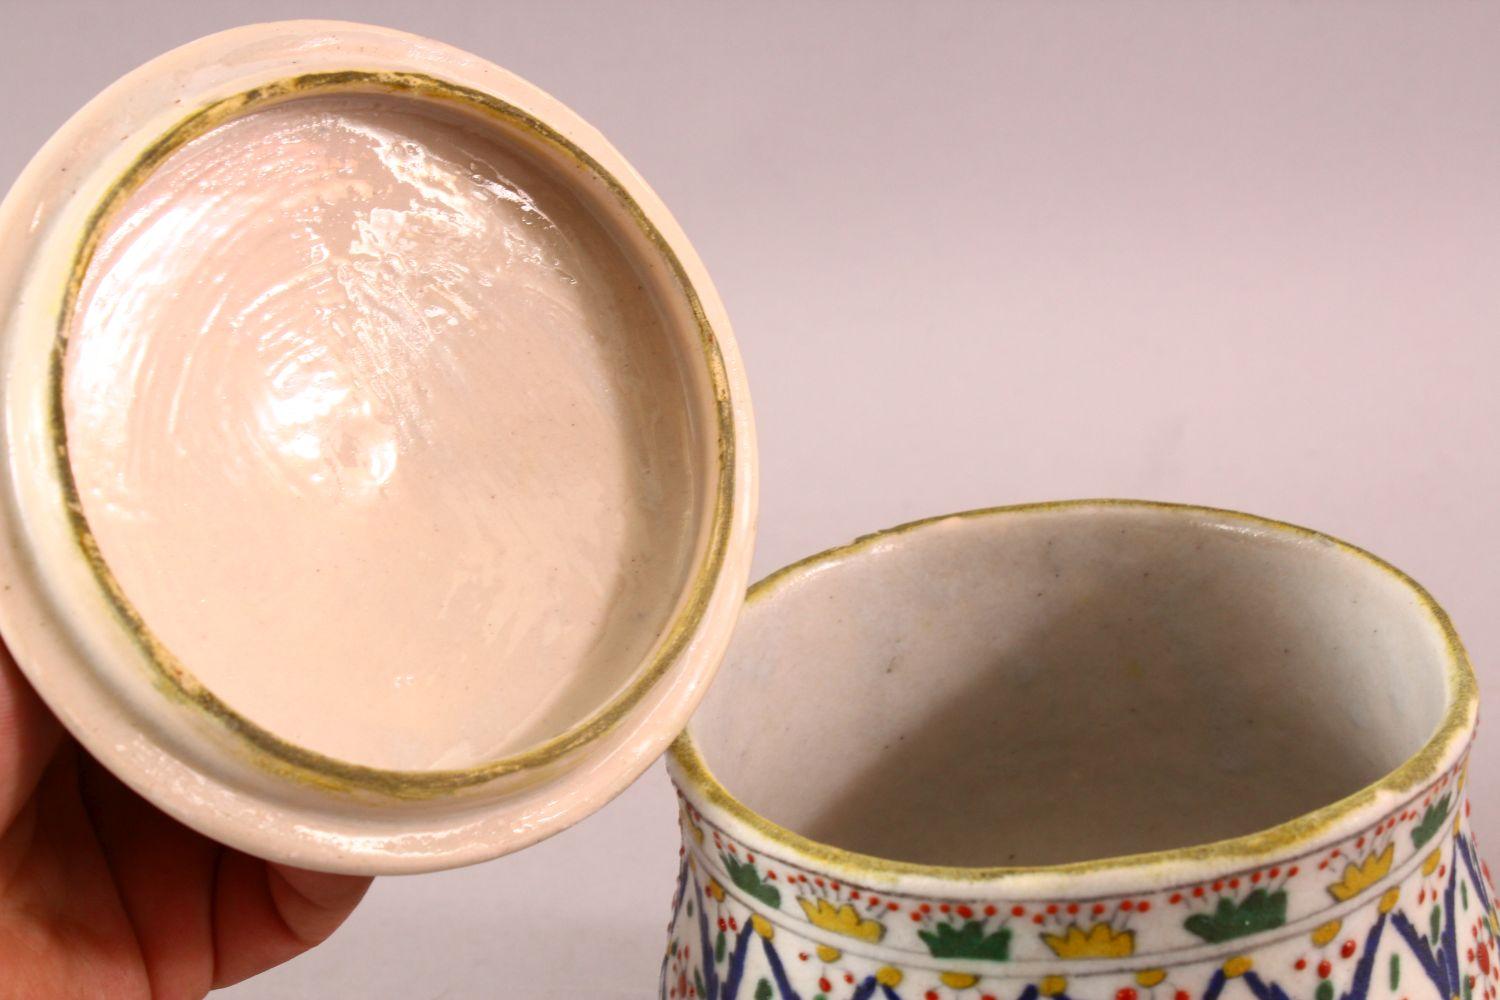 A TURKISH OTTOMAN DECORATED POTTERY BOWL & COVER, 13.5CM - Image 4 of 5